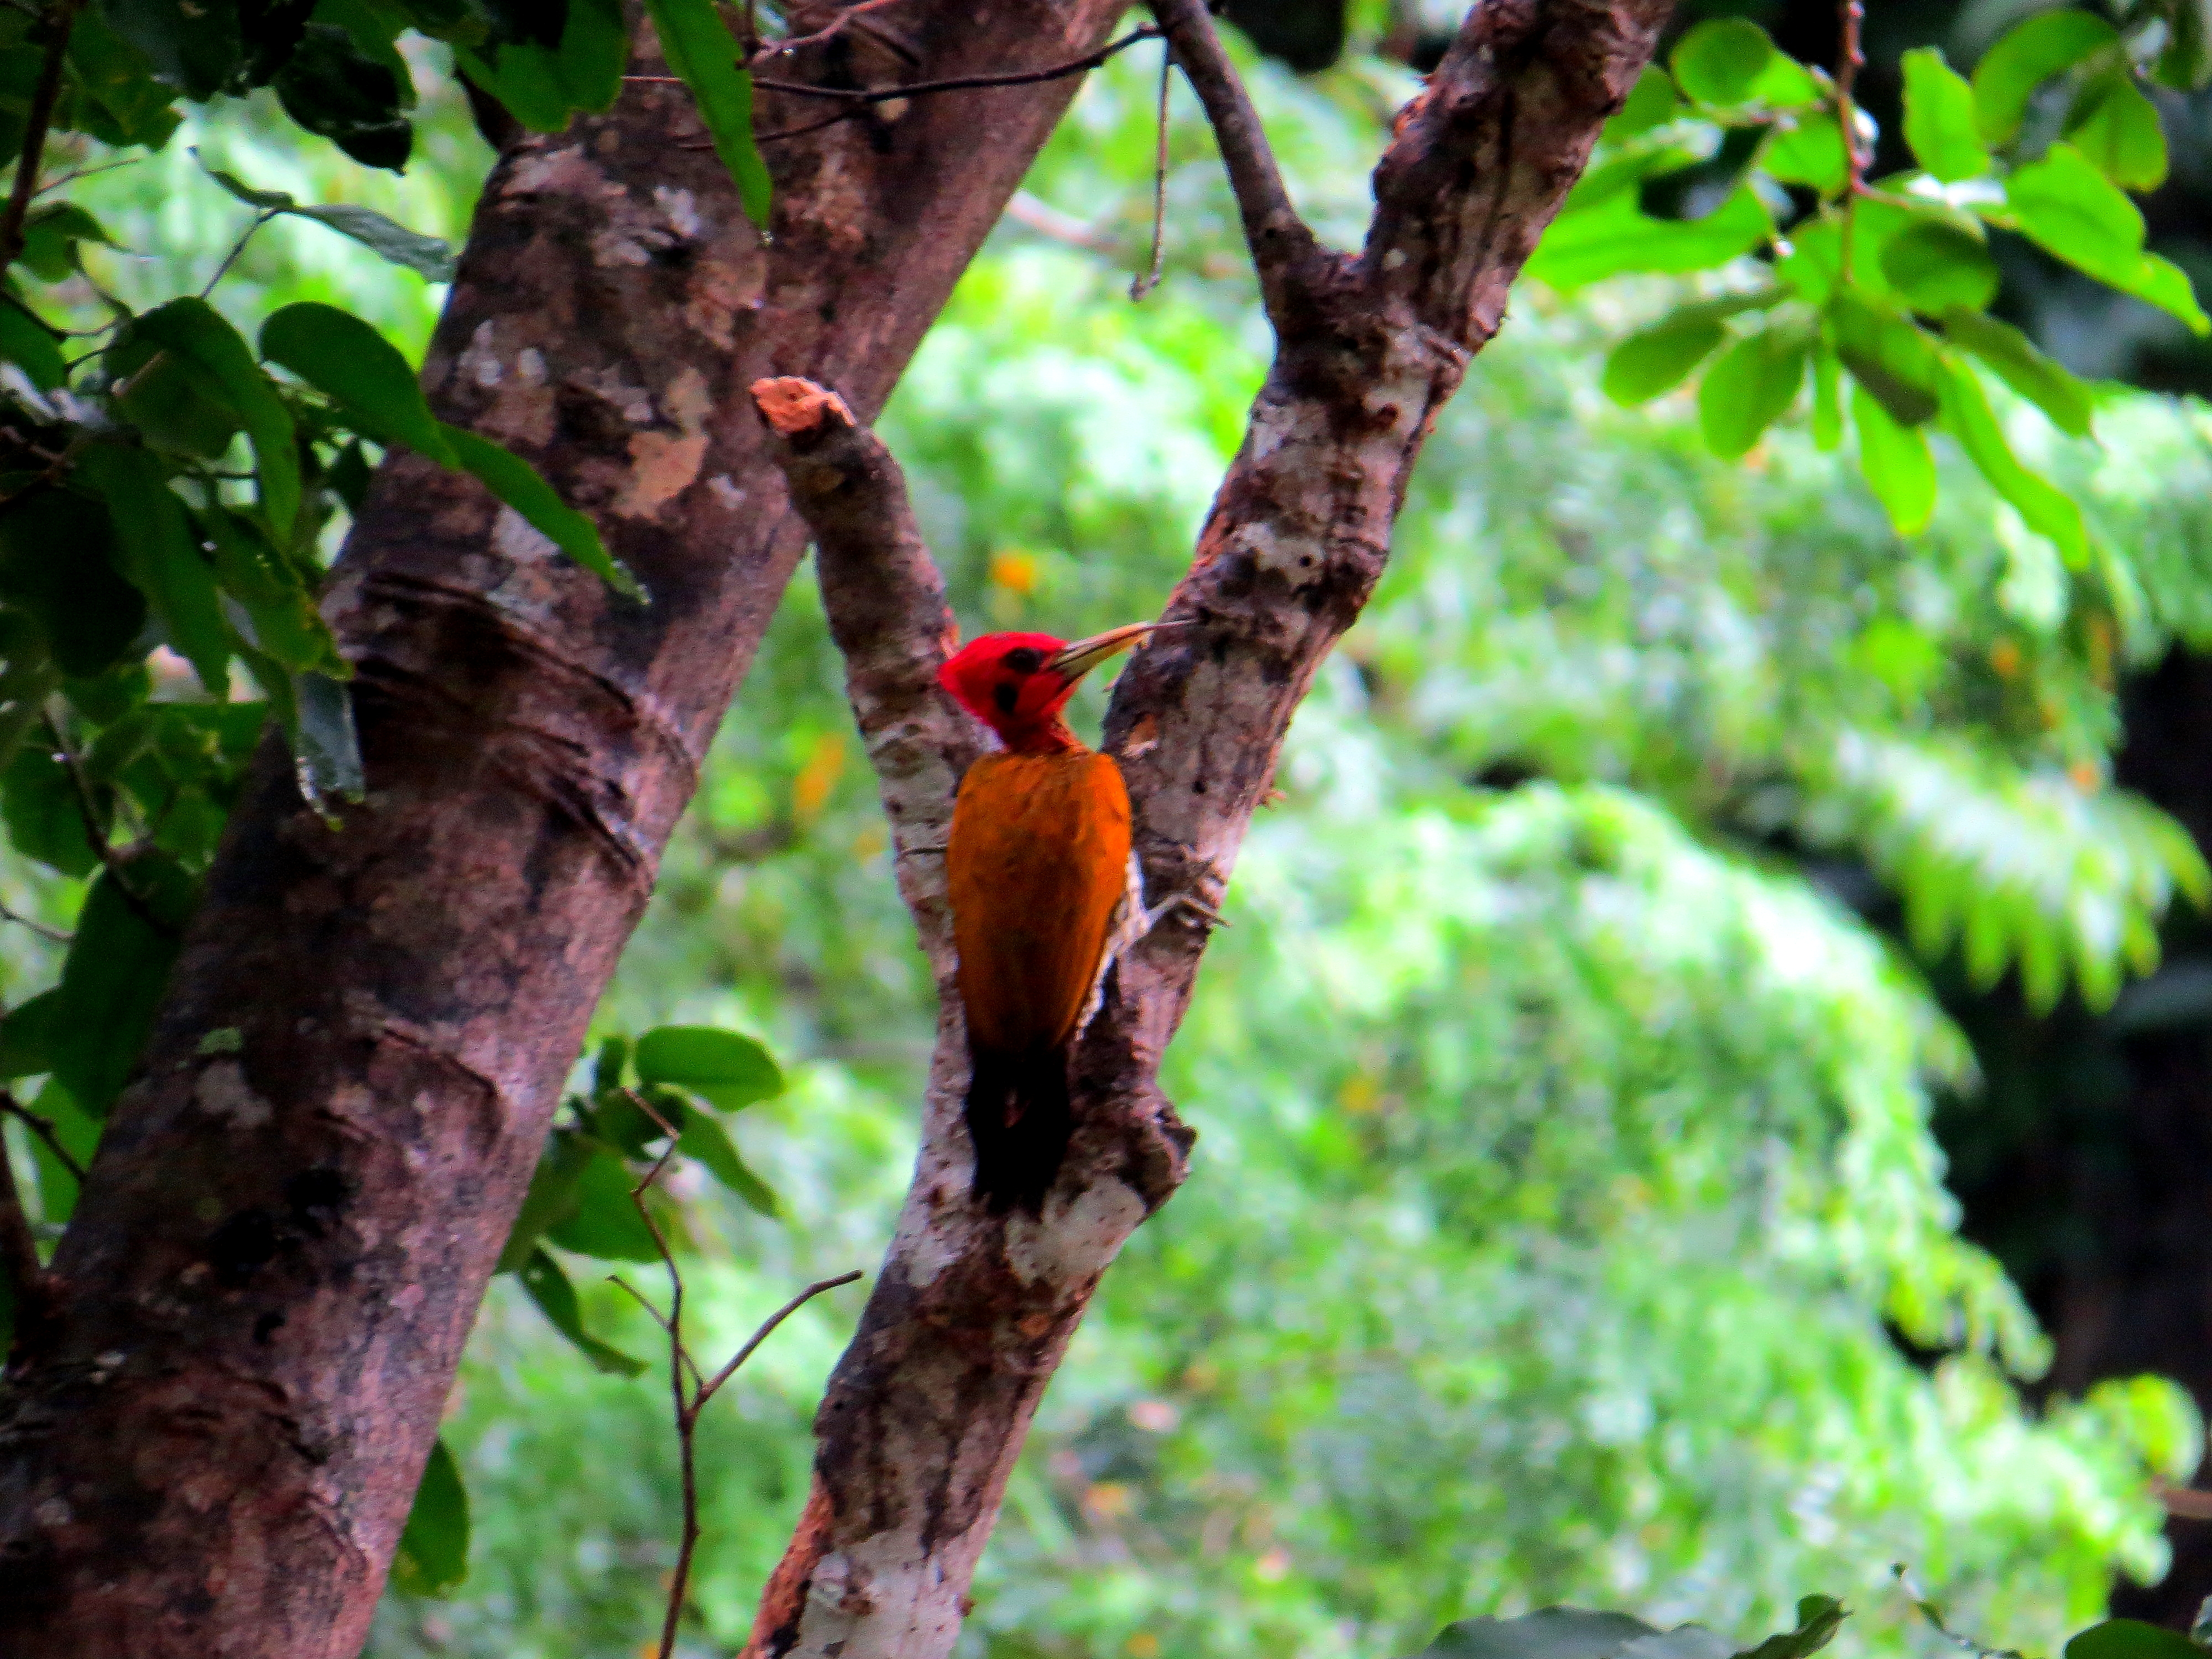 The lifer I got most excited about: Greater Flameback